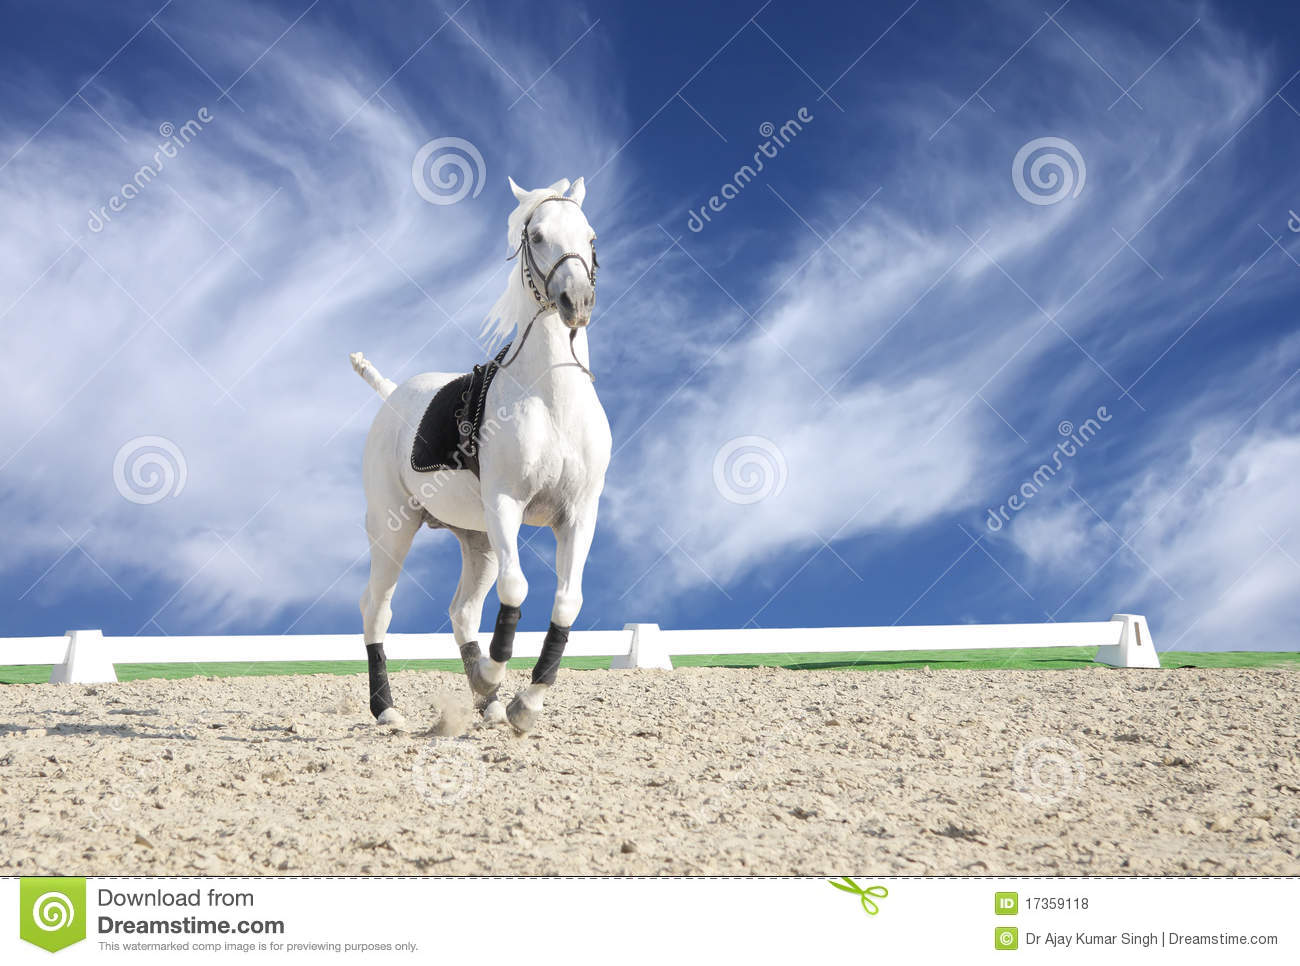 352 Beautiful White Horse Sand Arena Photos Free Royalty Free Stock Photos From Dreamstime